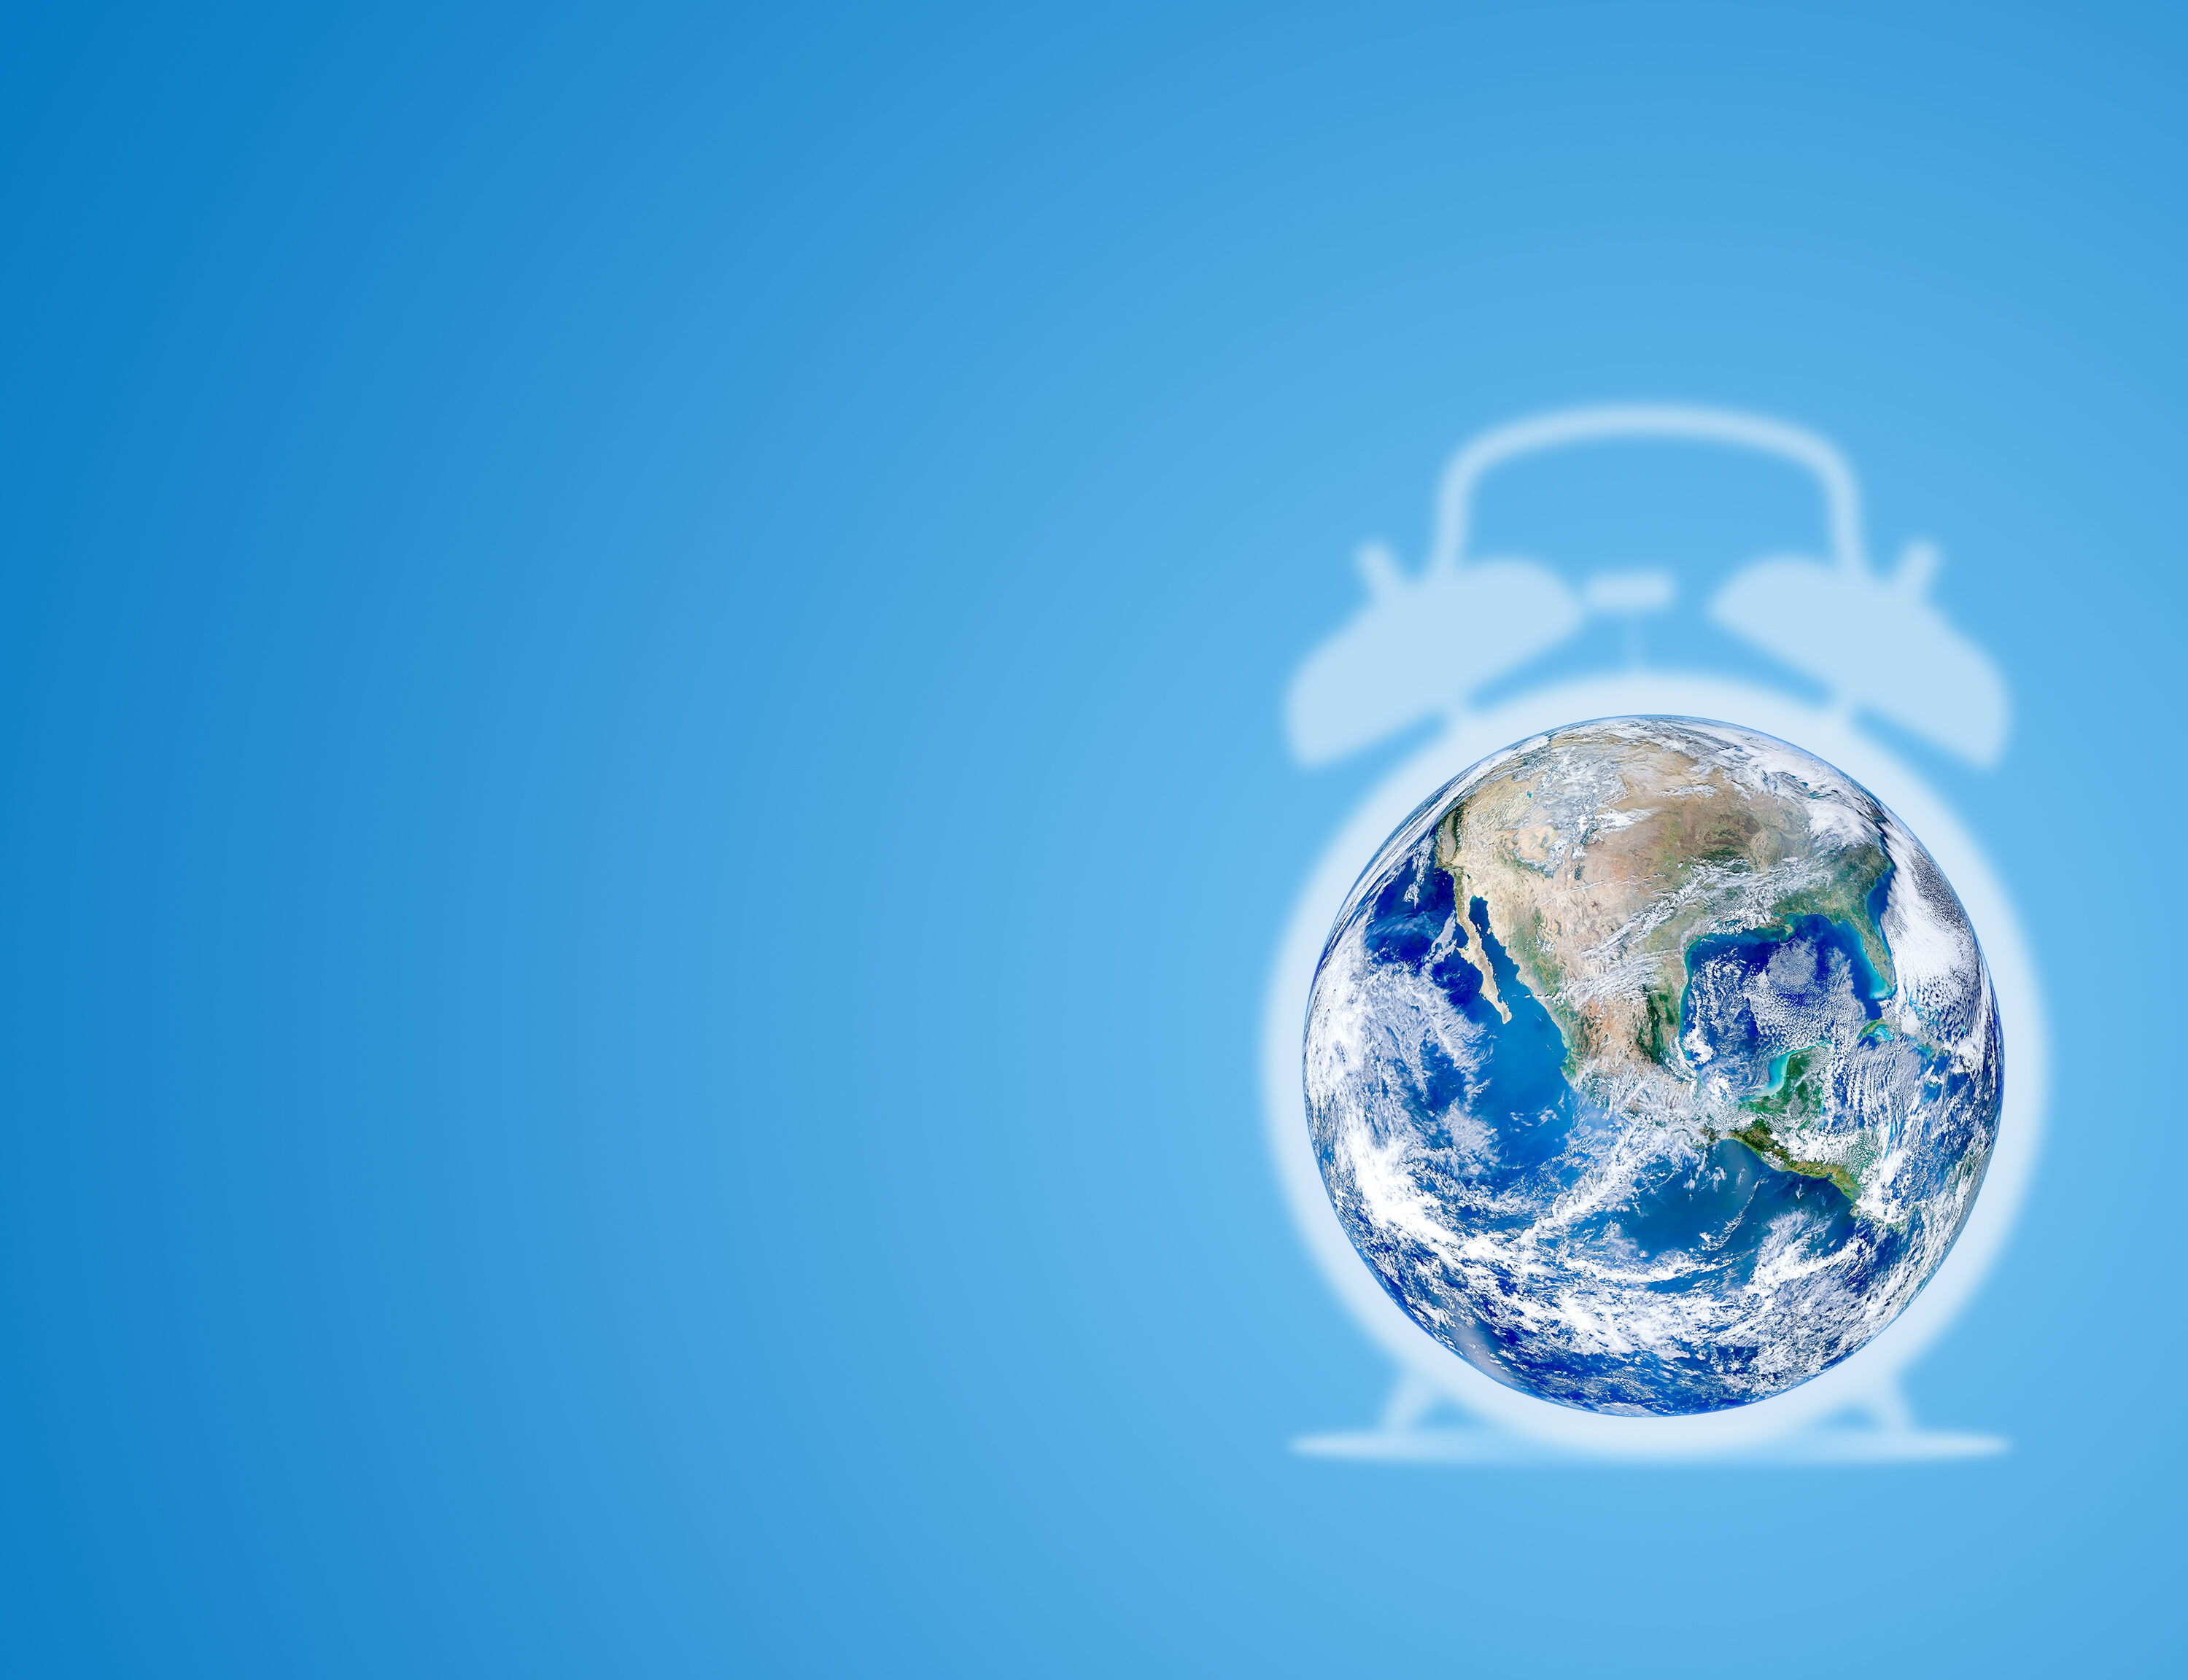 Ecology And Environmental Concept : Blue Planet Earth Globe Alar